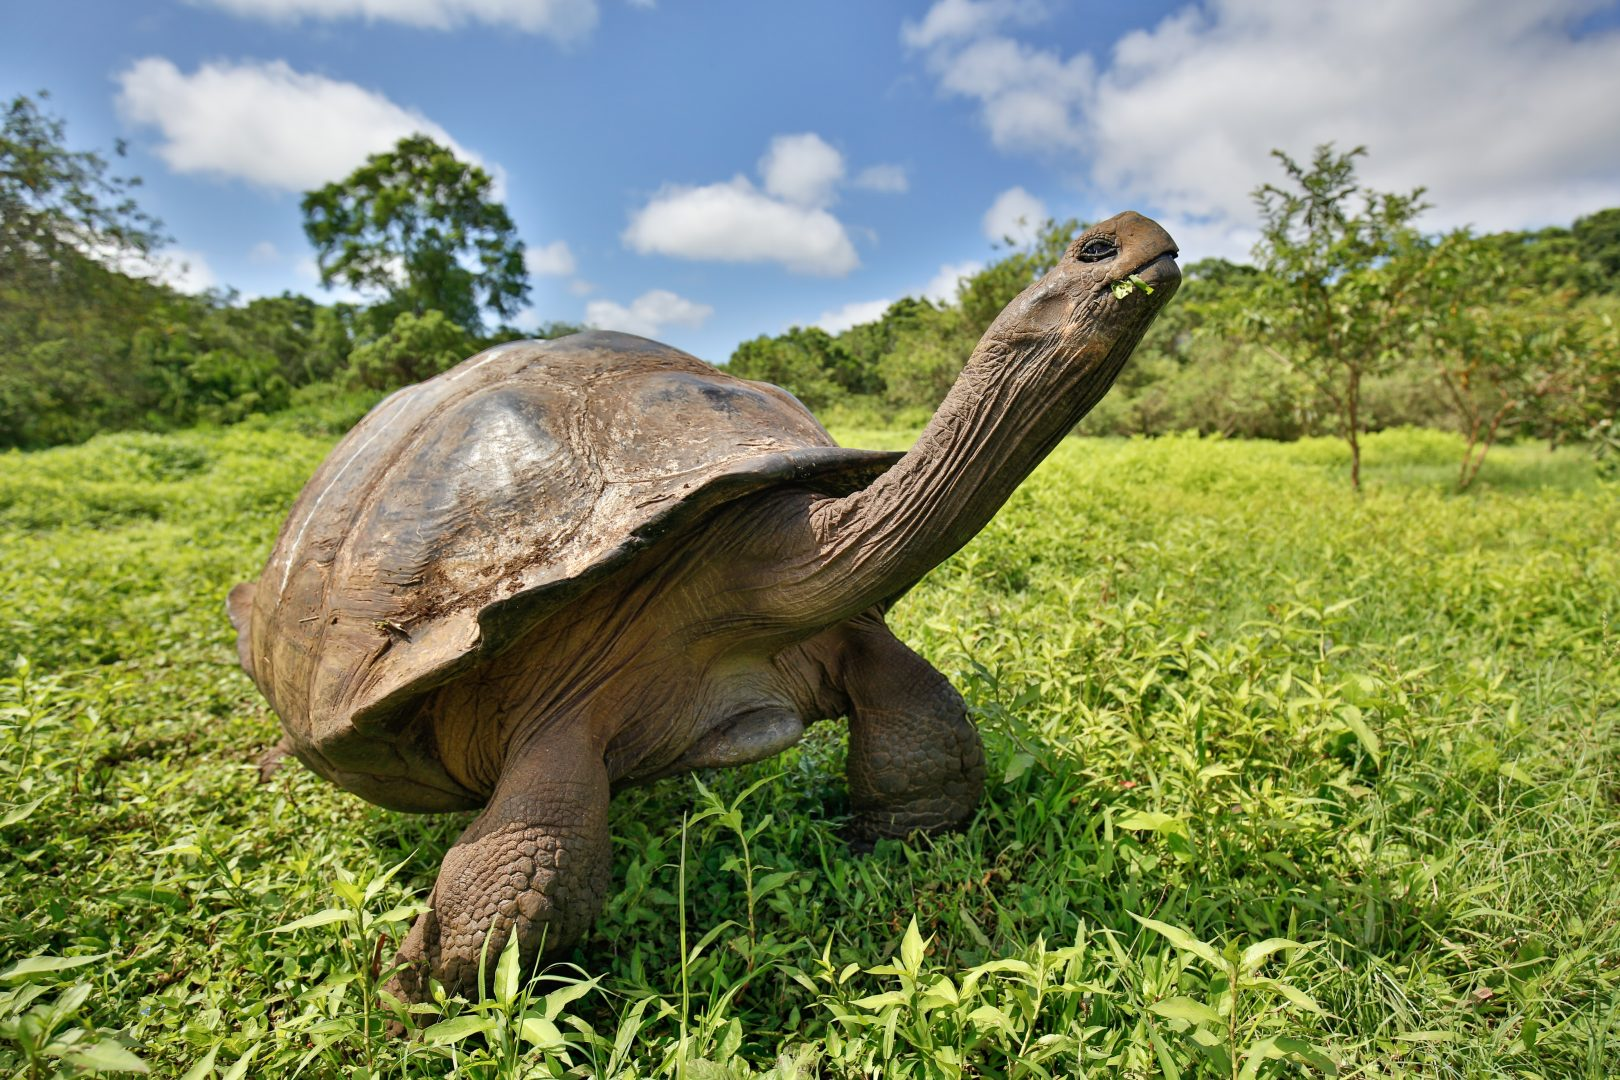 Galapagos tortoise enjoying some grass